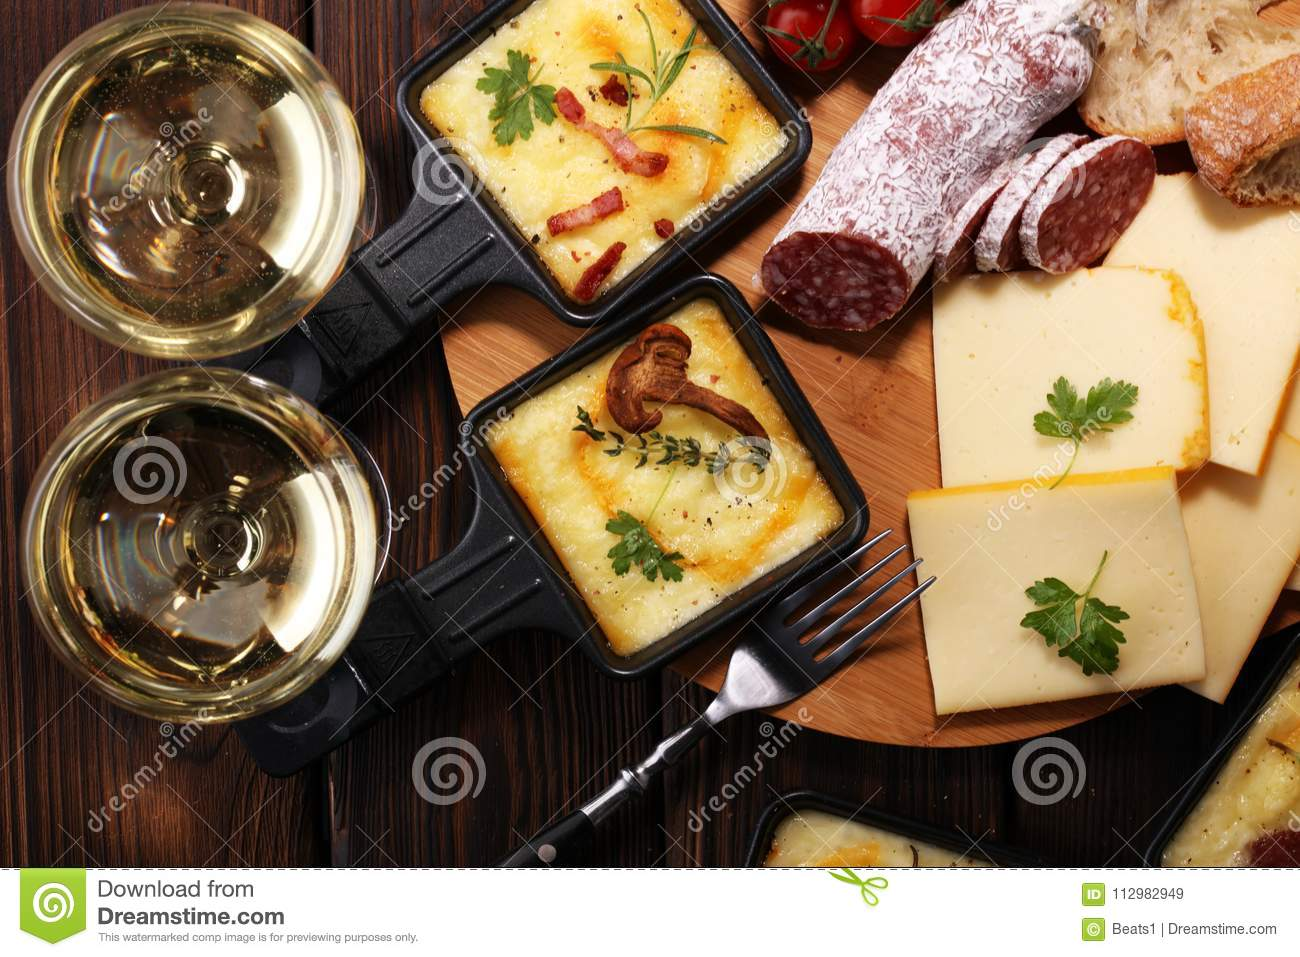 Delicious traditional Swiss melted raclette cheese on diced boil